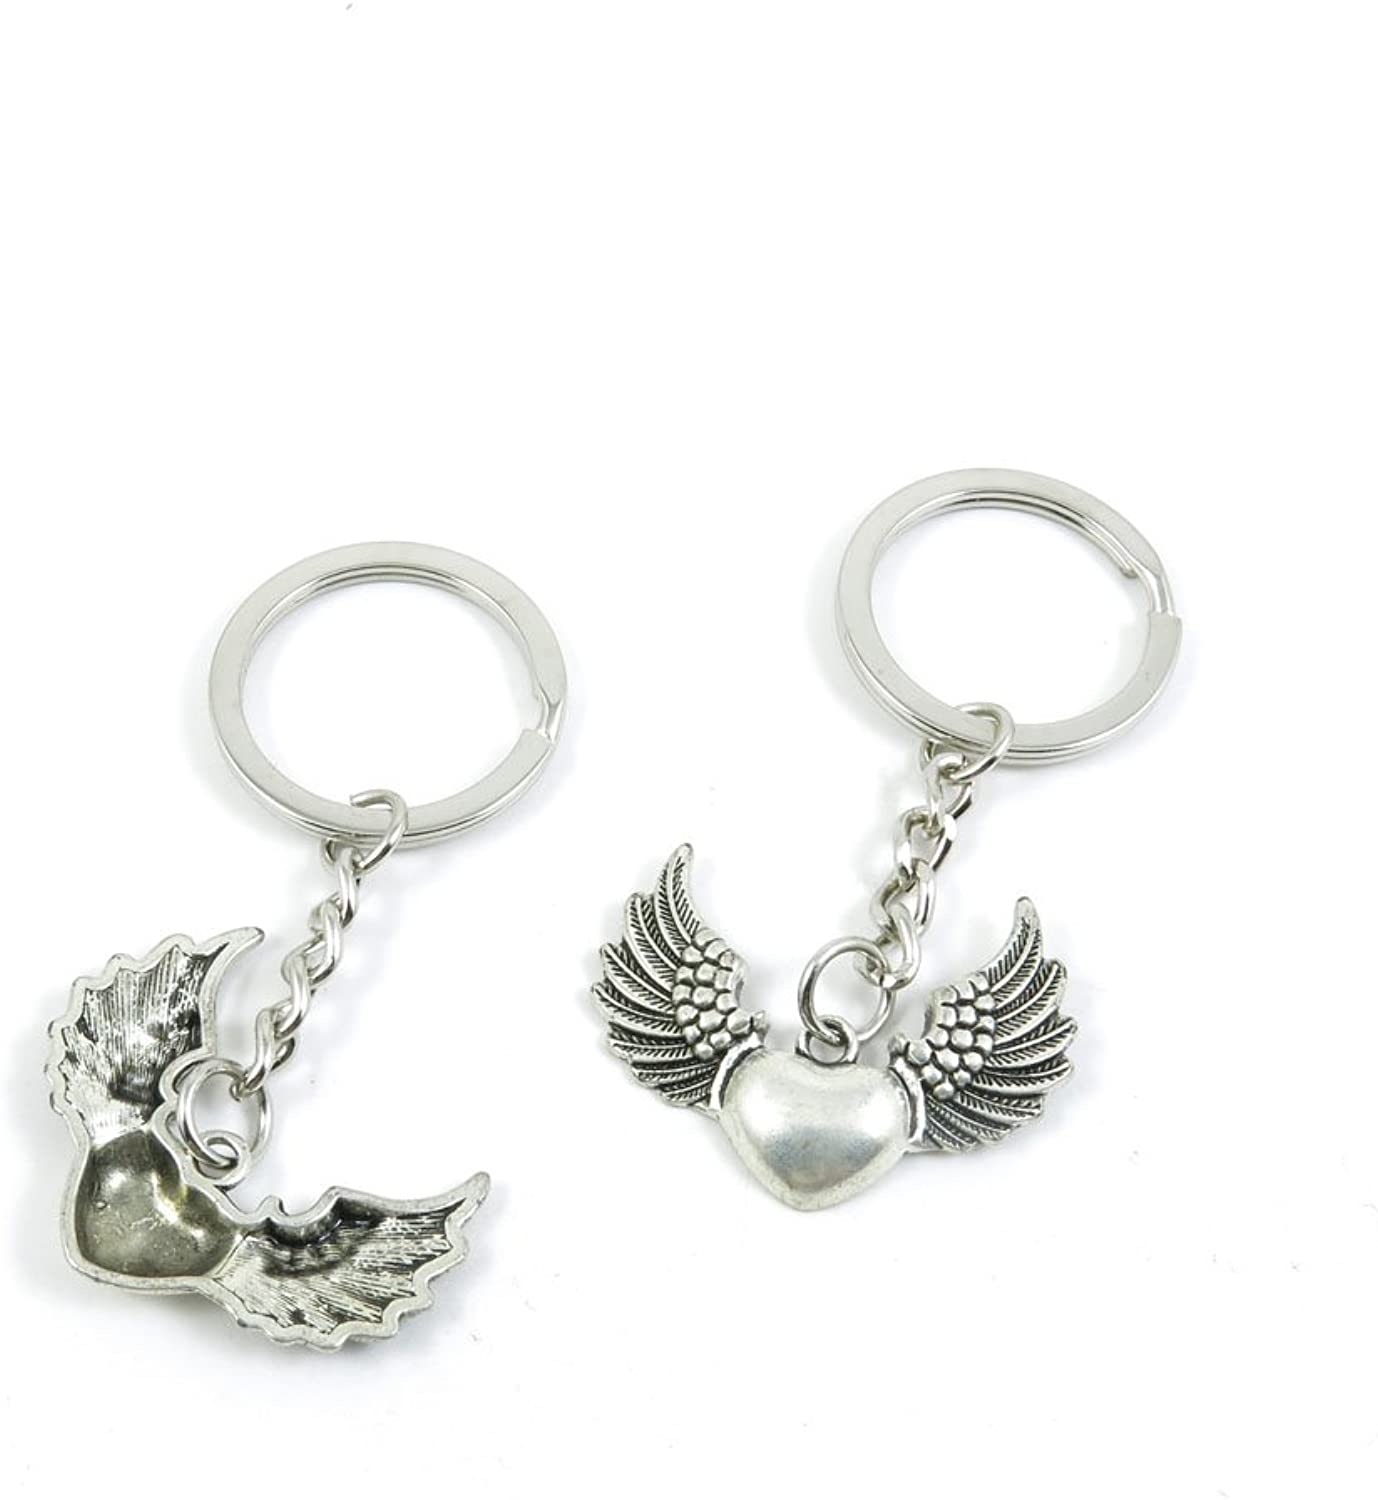 100 Pieces Keychain Keyring Door Car Key Chain Ring Tag Charms Bulk Supply Jewelry Making Clasp Findings G8RD6A Heart Wings